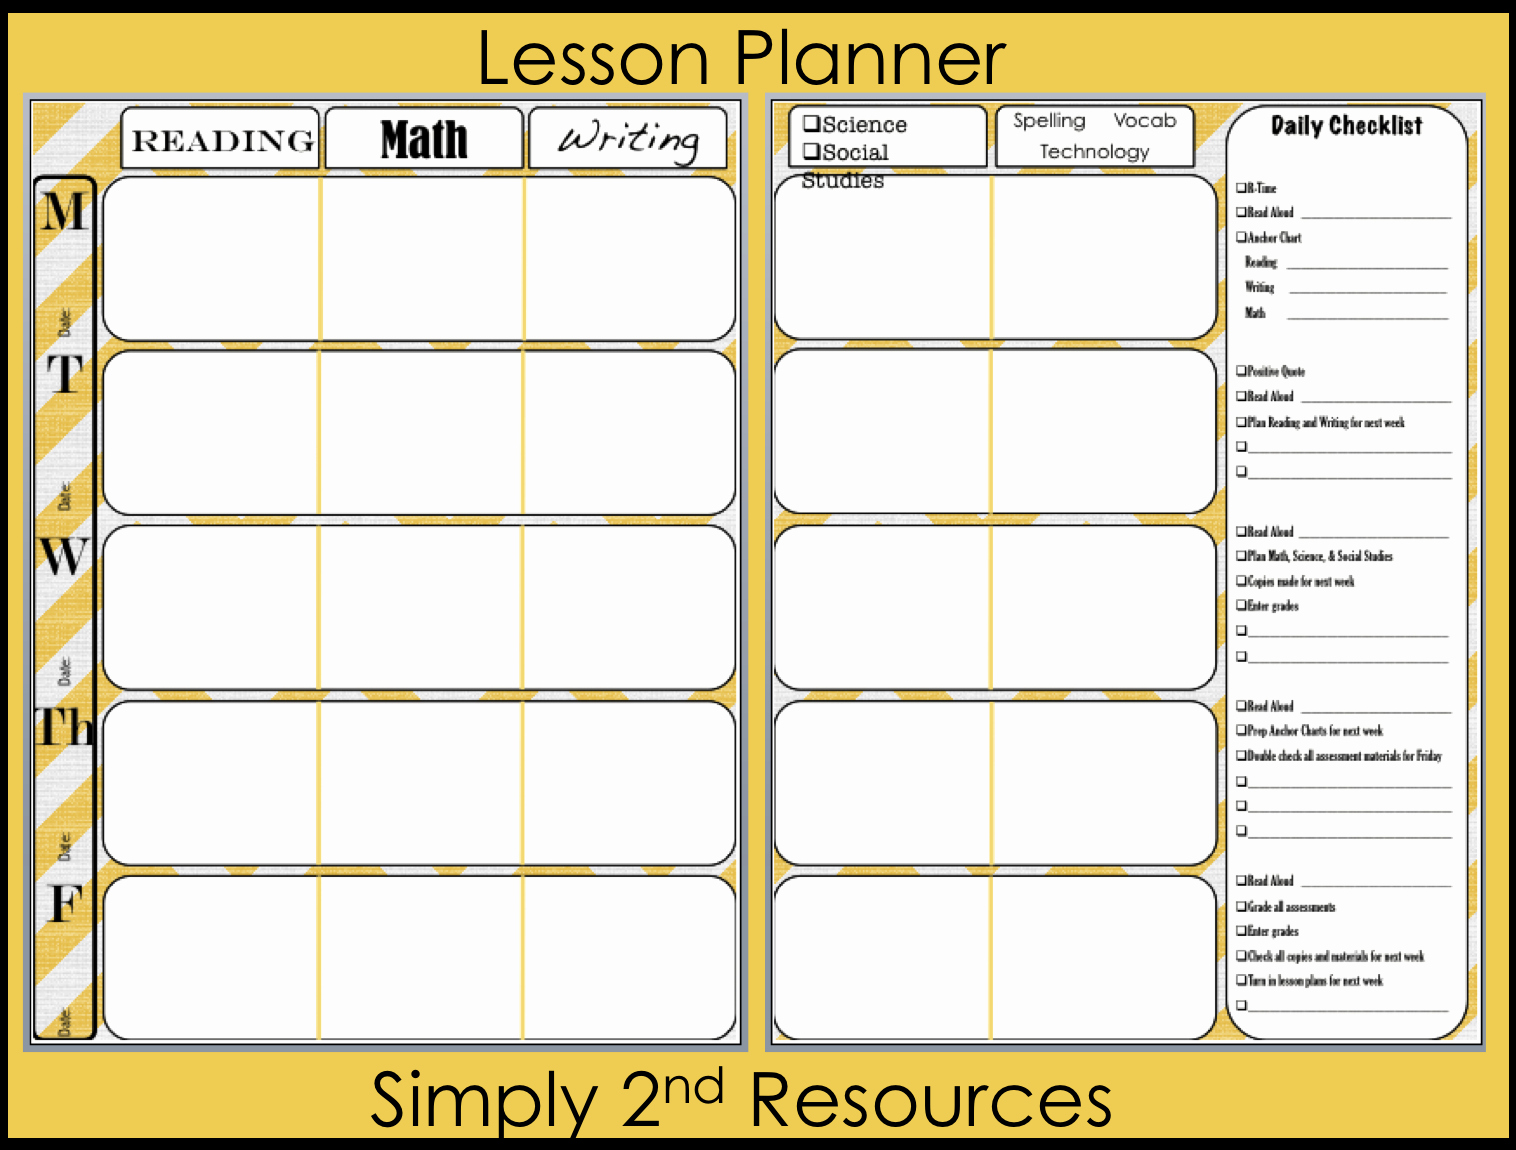 Weekly Lesson Plan Template Free Inspirational Simply 2nd Resources Lesson Plan Template so Excited to